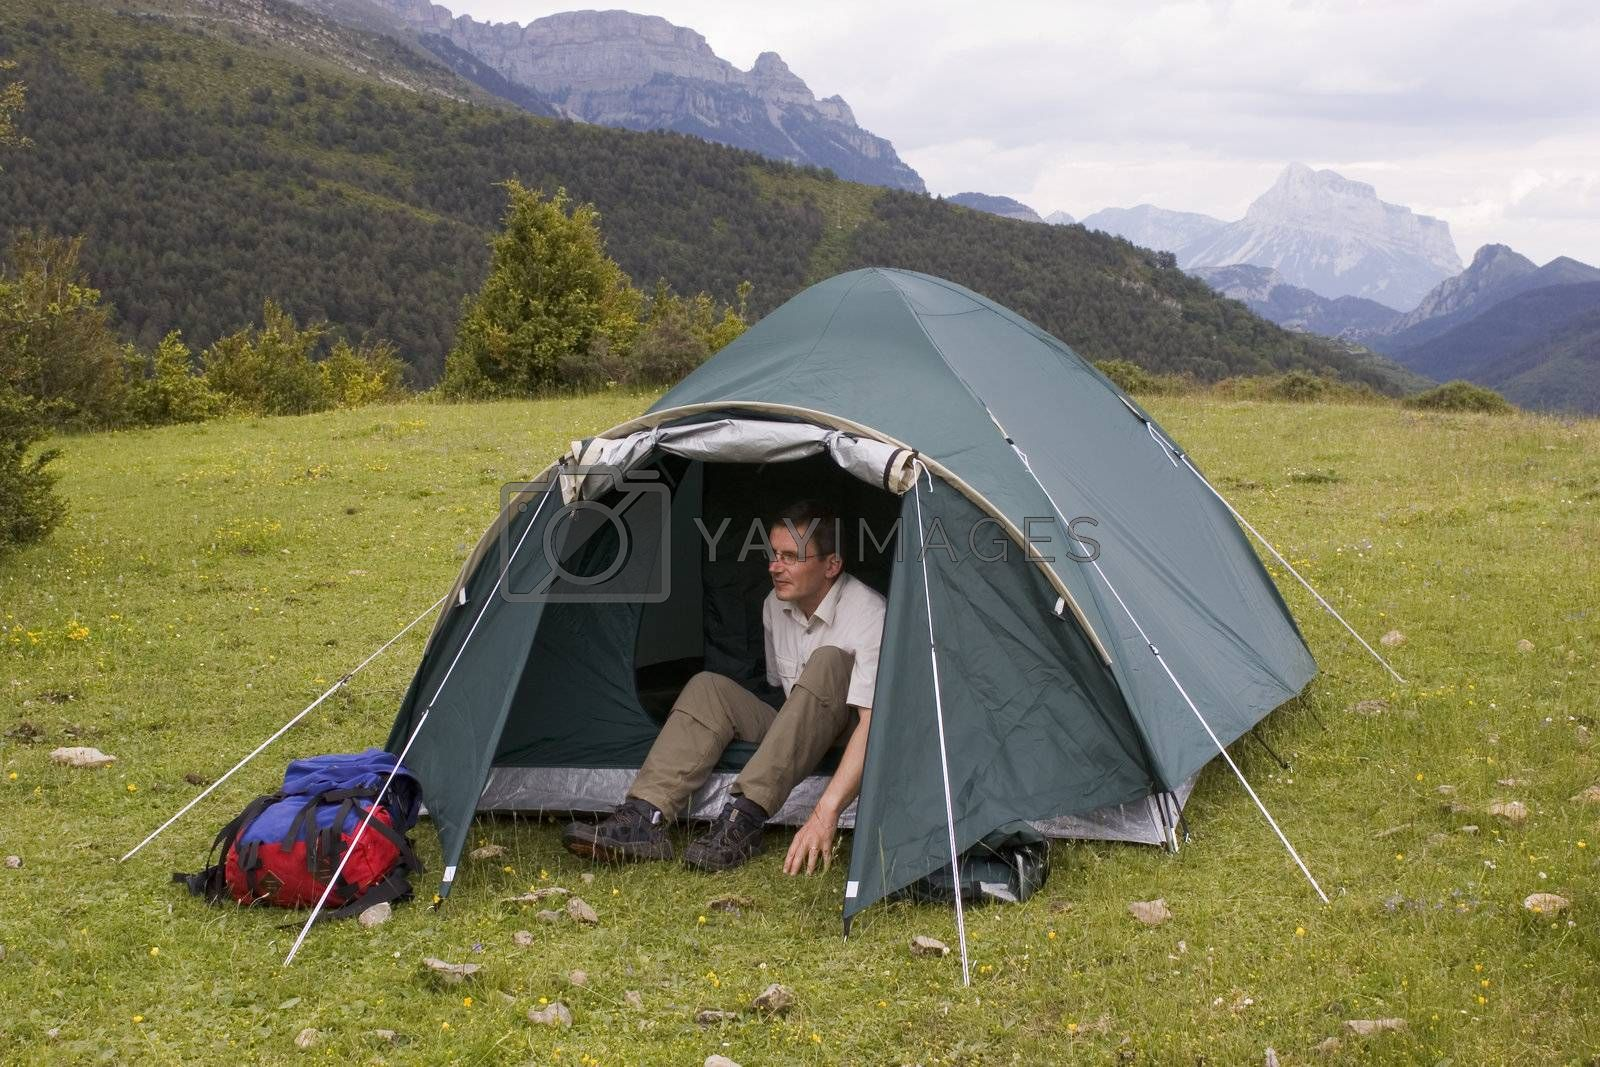 Mountaineer in his tent on a meadow with mountains in the background